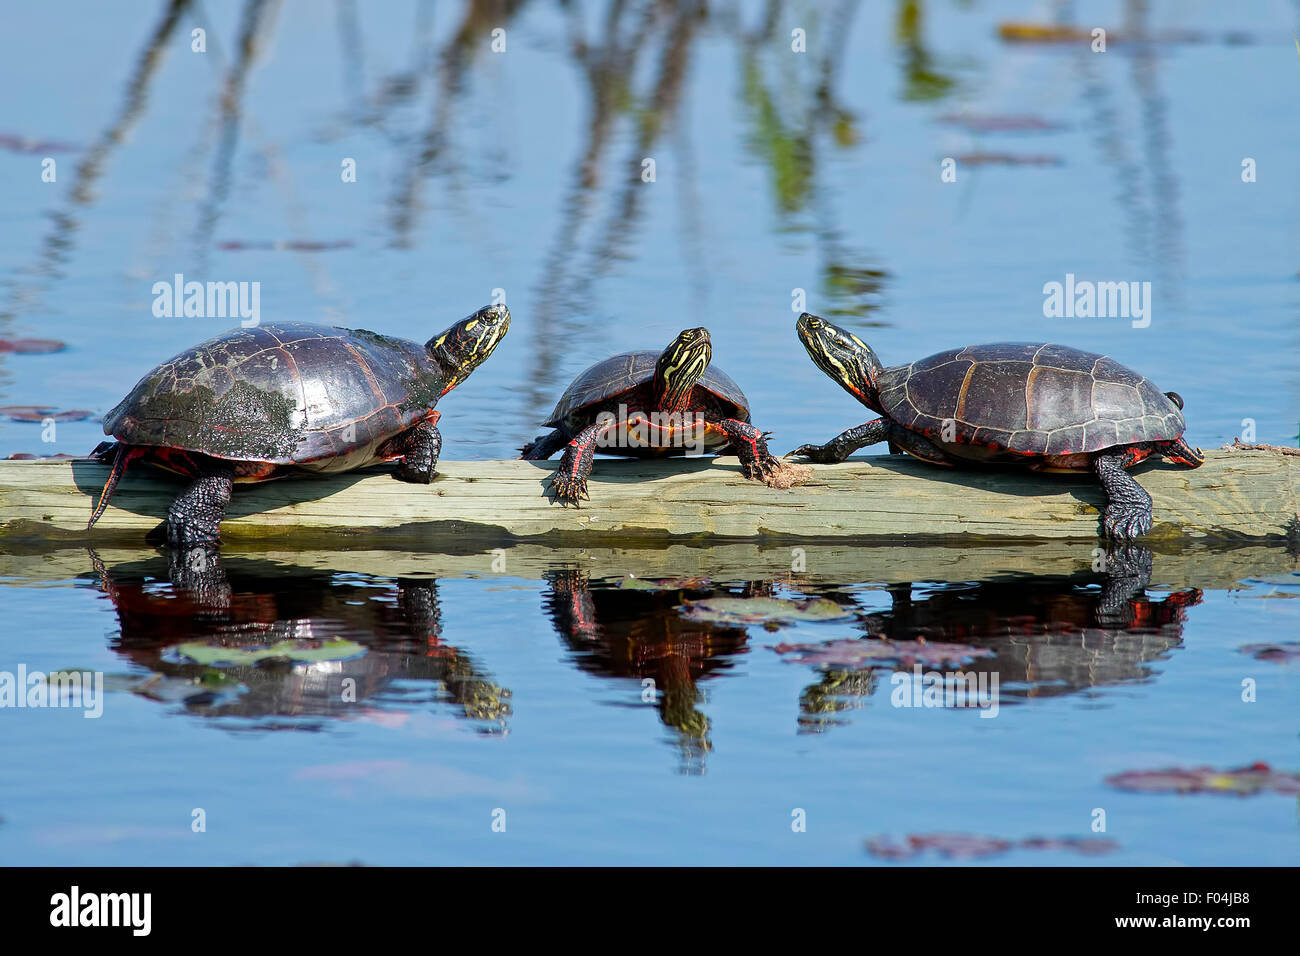 Eastern Painted Turtles resting on a Log. - Stock Image